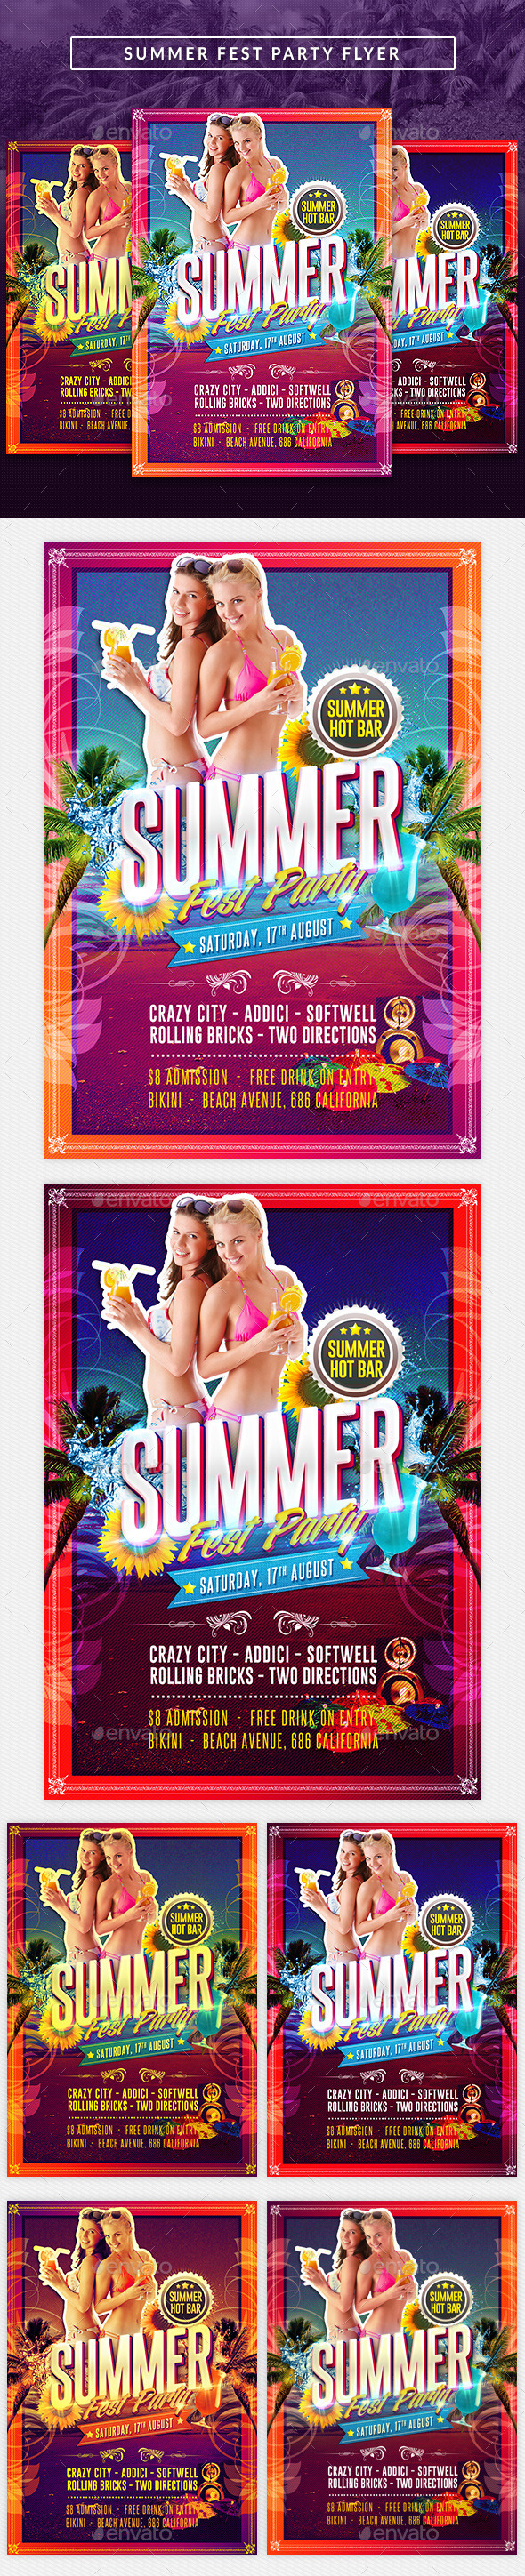 Summer Hot Fest Party Flyer - Clubs & Parties Events